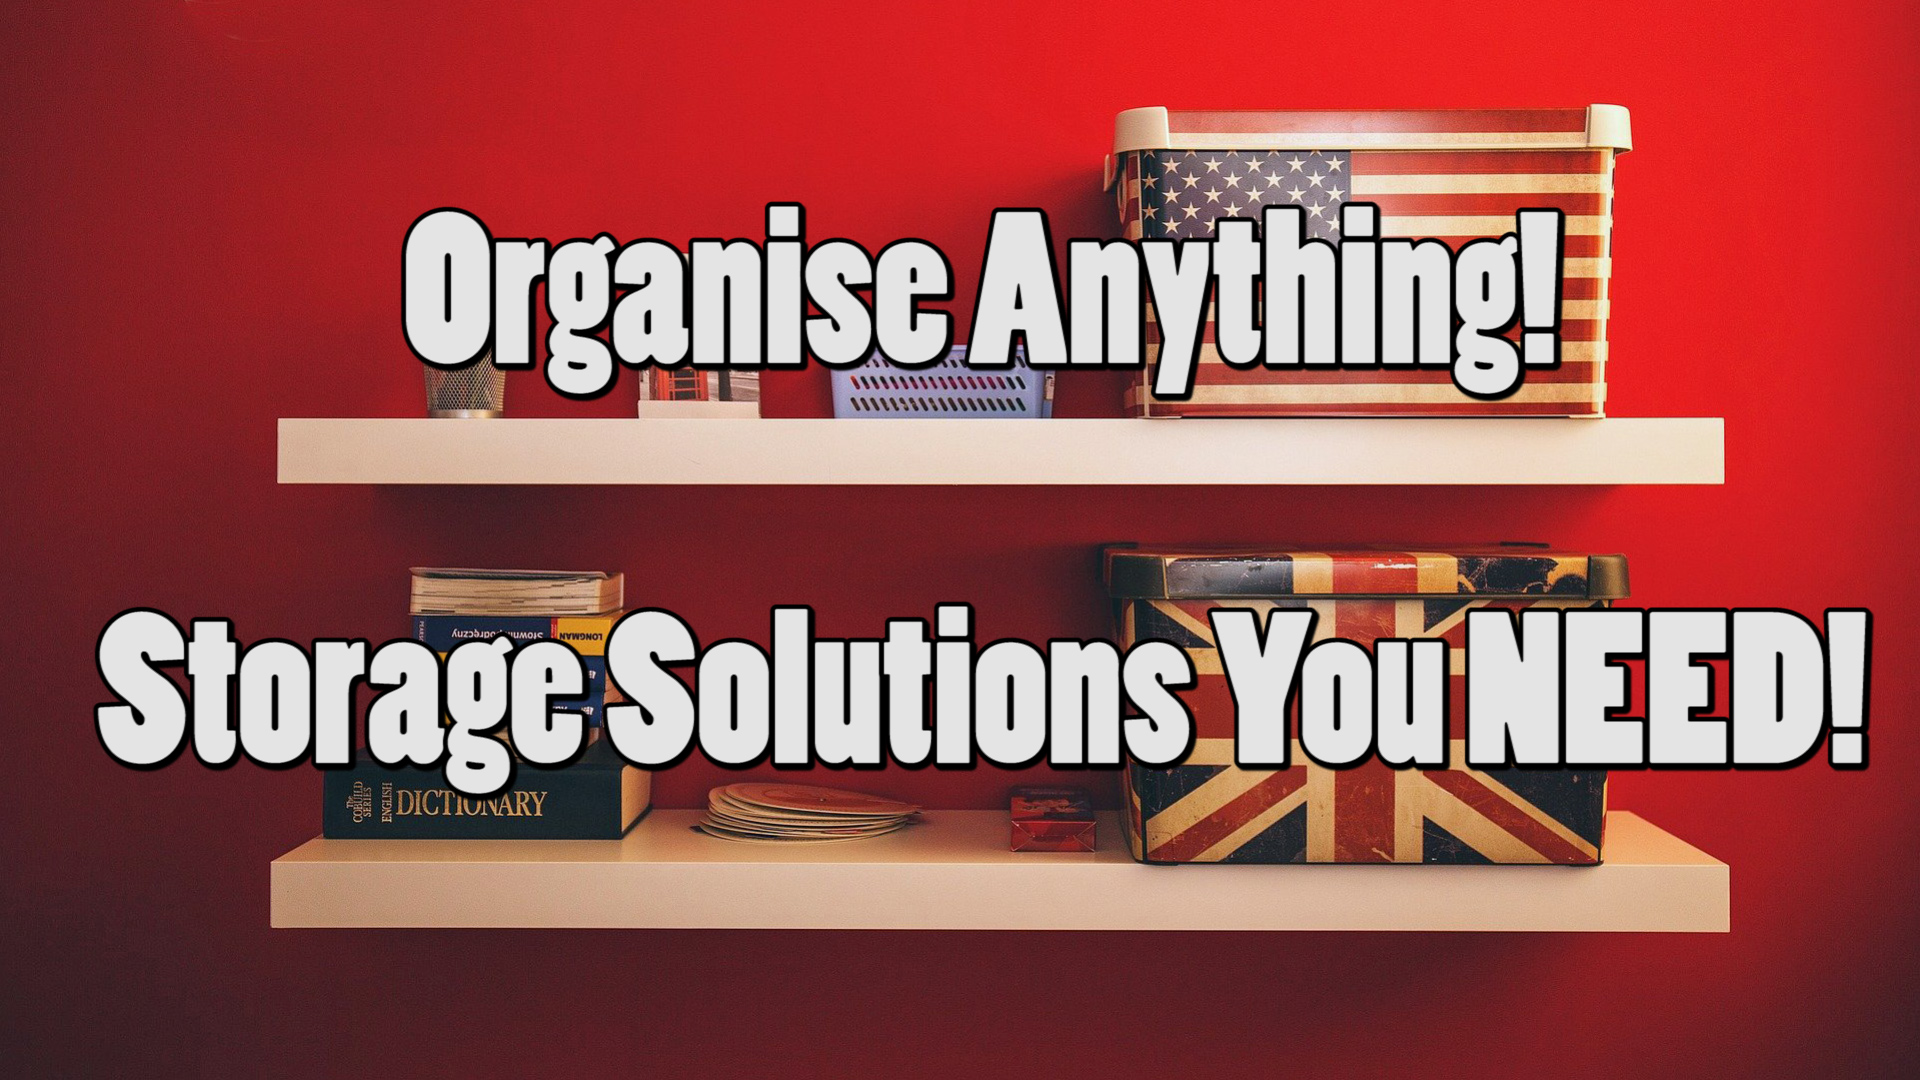 """Neat boxes on two shelves on a red background. White text reads """"Organise Anything! Storage Solutions You NEED!"""